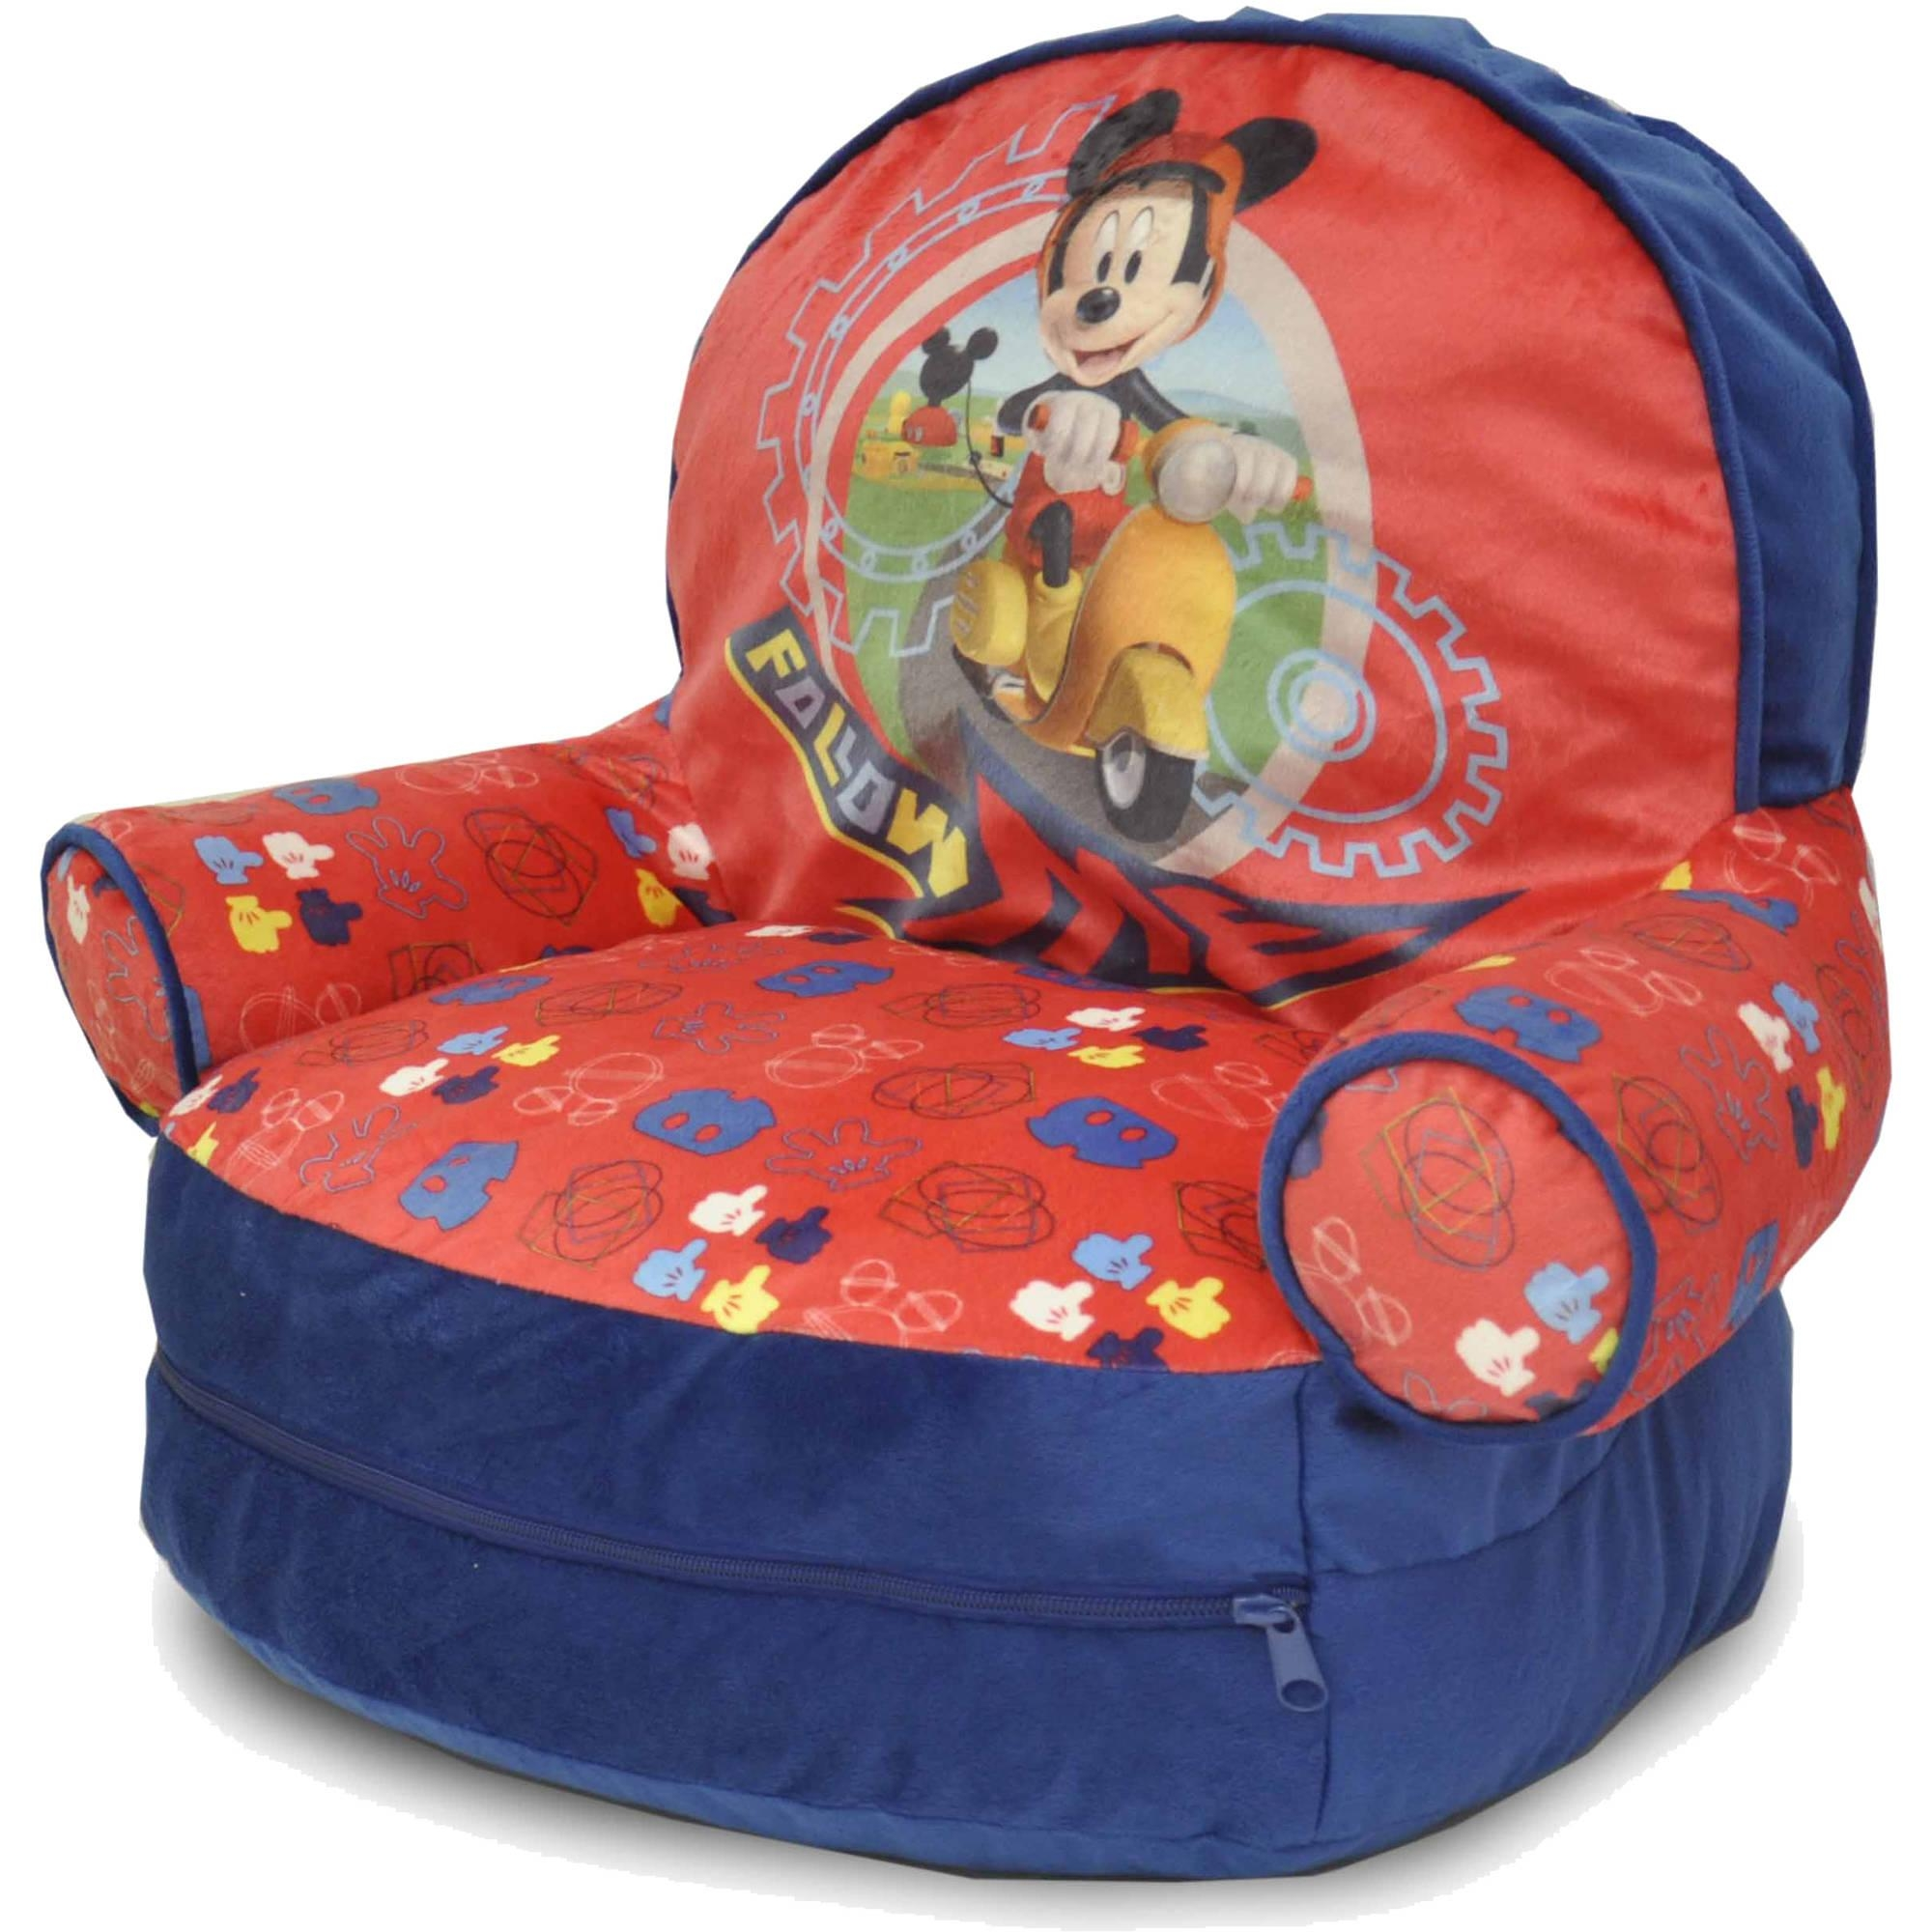 Minnie Mouse Furniture With Disney Sofa Chairs (Image 15 of 20)